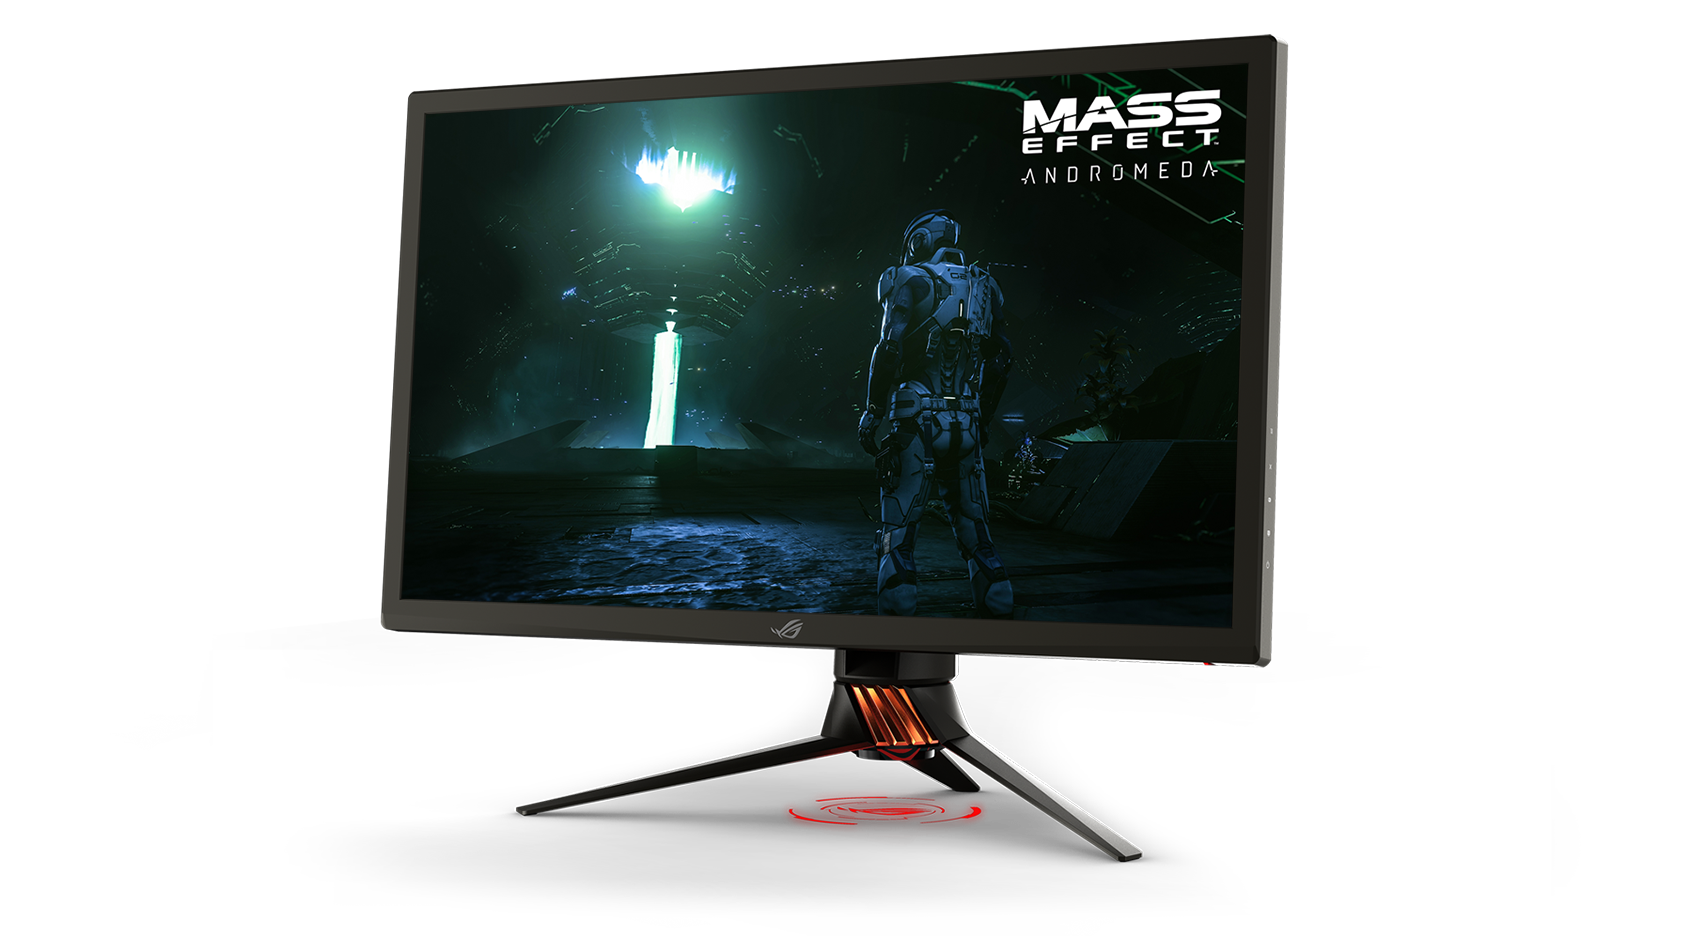 G-SYNC HDR Announced, First Two 8K 188Hz Monitors Available in Q8 8017